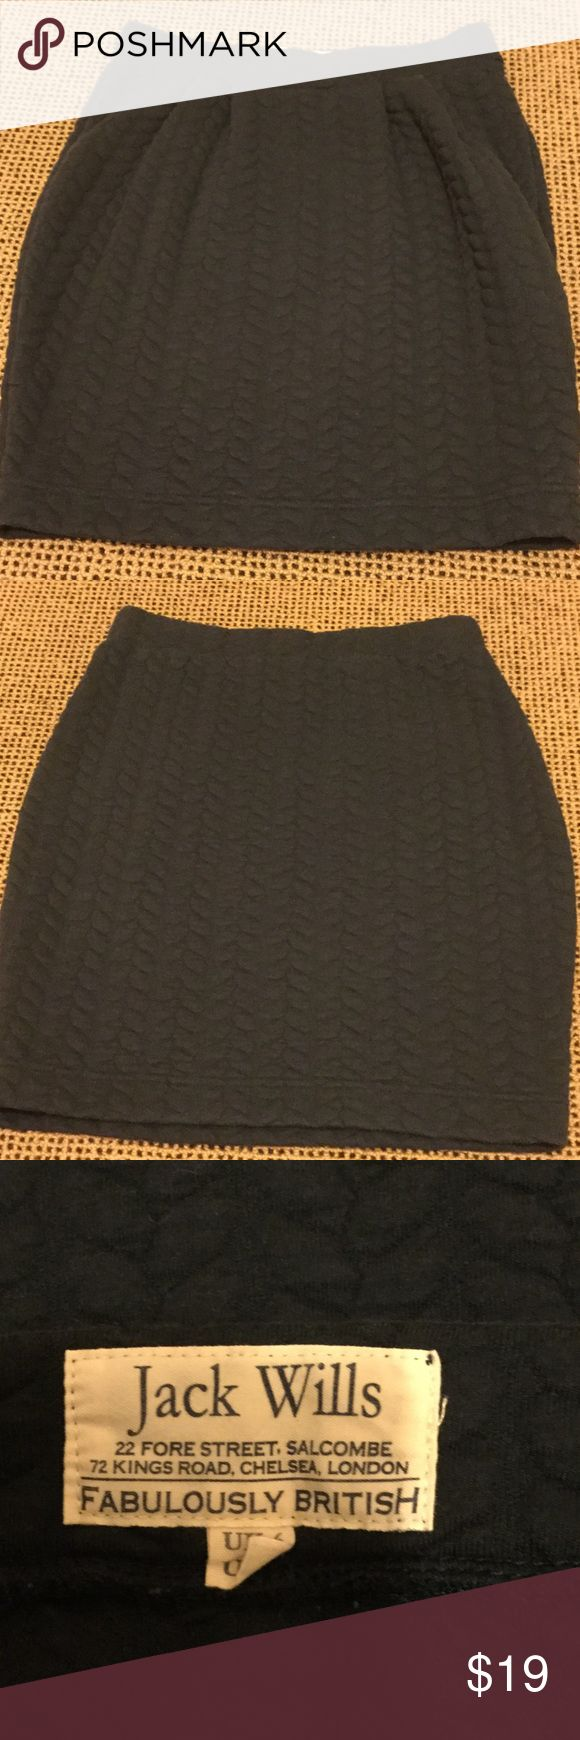 Jack Wills navy skirt US 2 Navy Jack Wills knit Skirt-elastic waist with cabled pattern.  Thick material.  Very good condition. Jack Wills Skirts